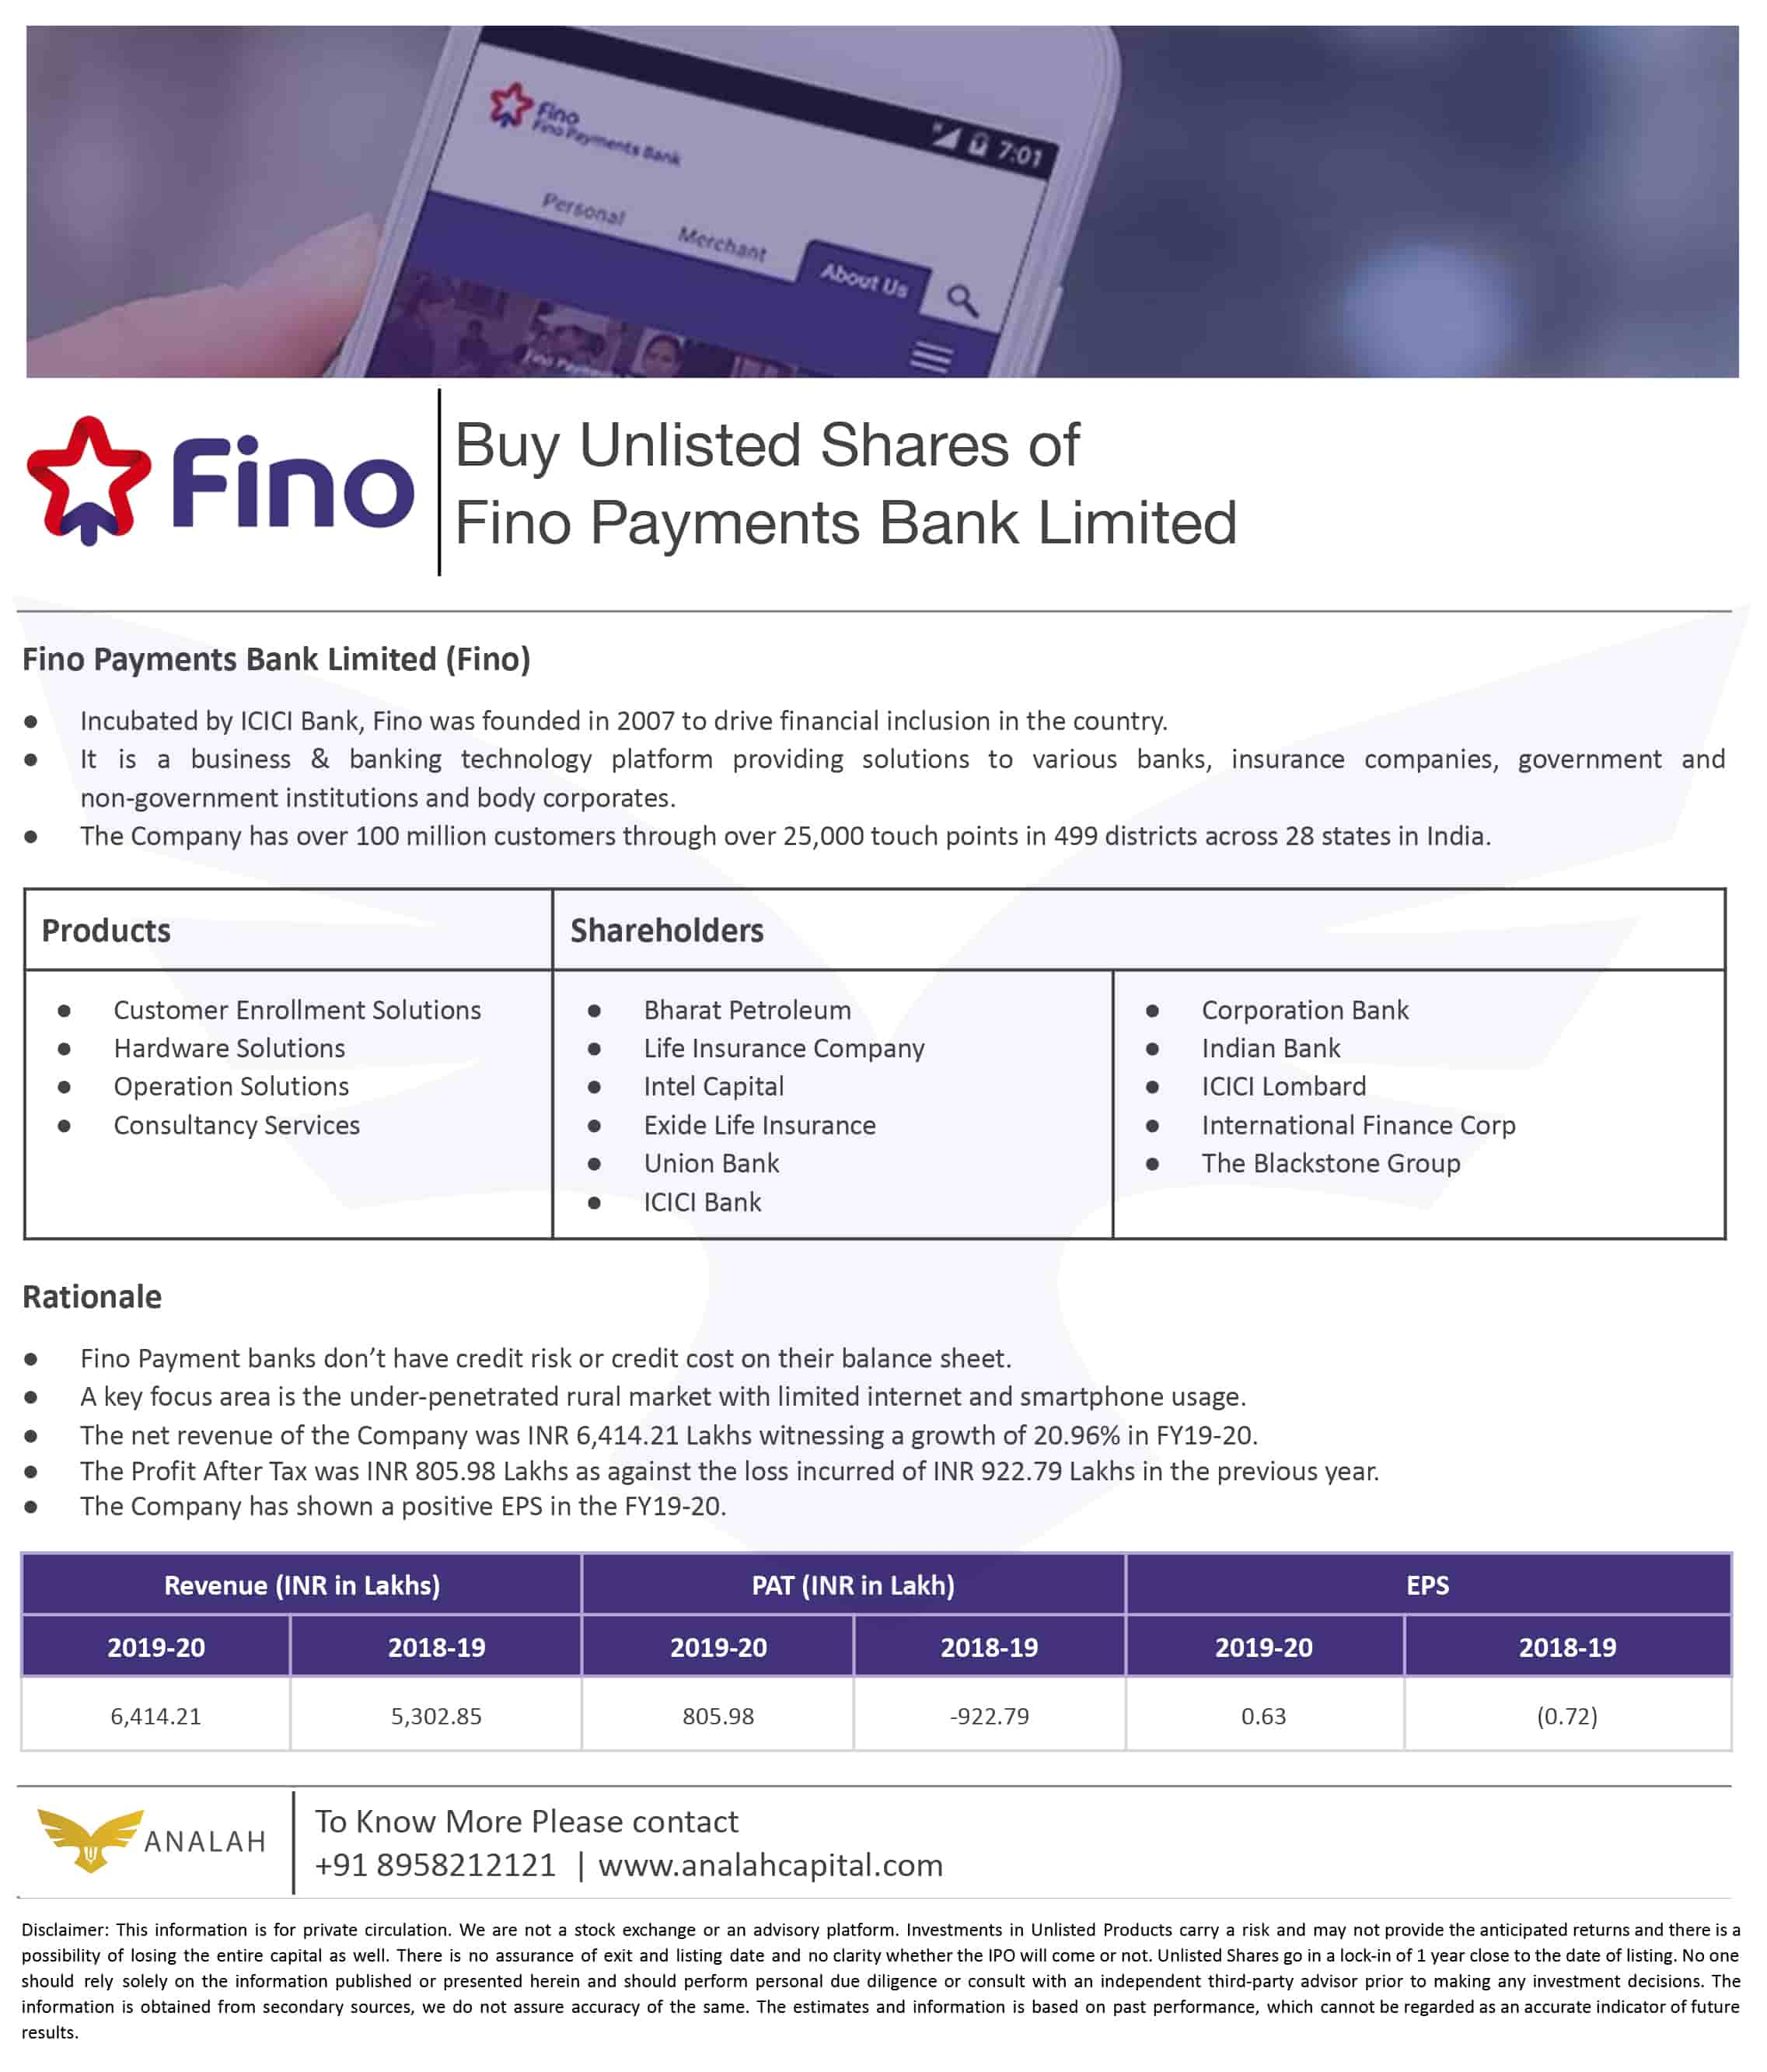 Fino Payment Bank Unlisted Shares